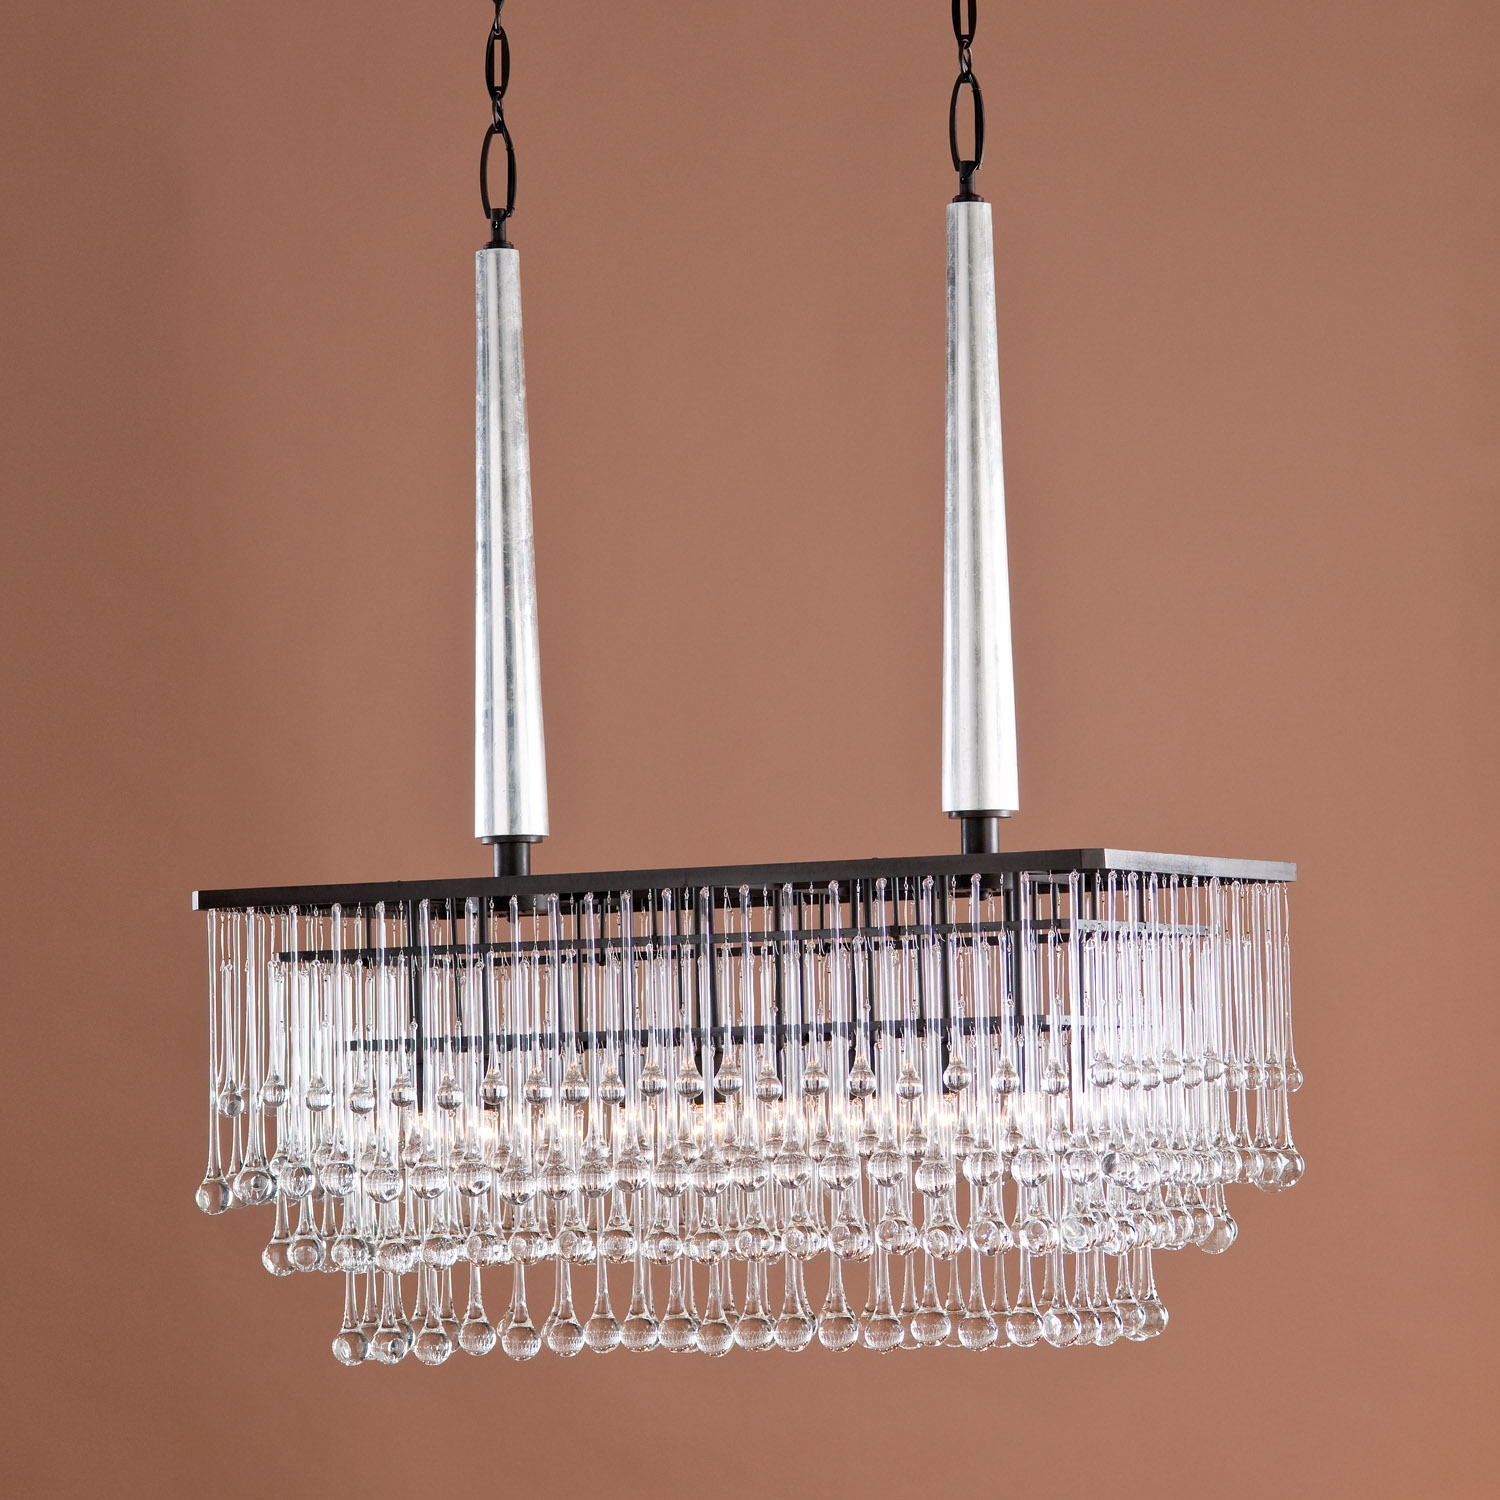 Modern Hanging Rectangular Chandelier With Bronze Frame And Pertaining To Bronze Modern Chandelier (#11 of 12)